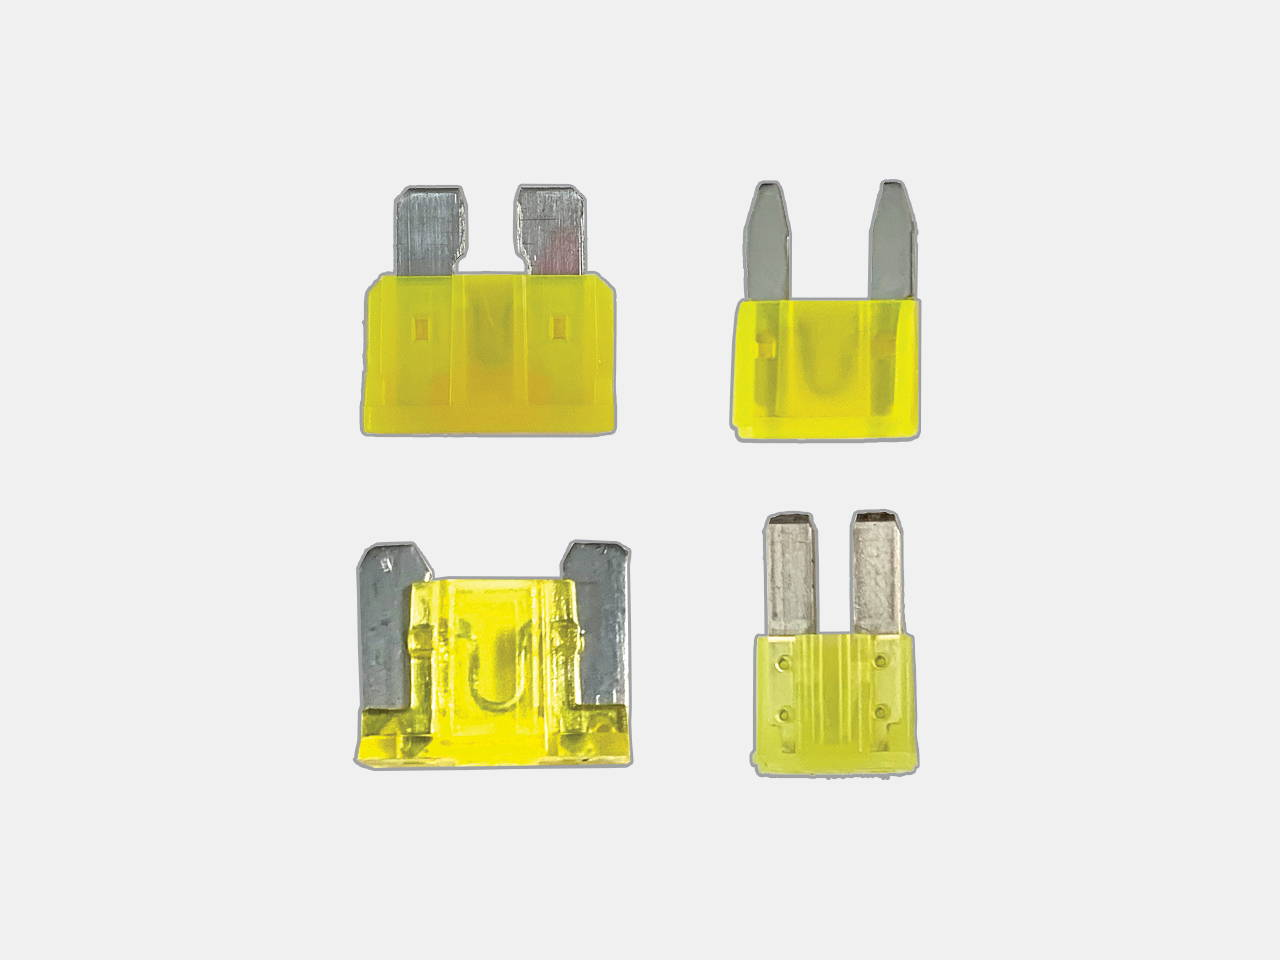 fuses (connects to your add-a-fuse)